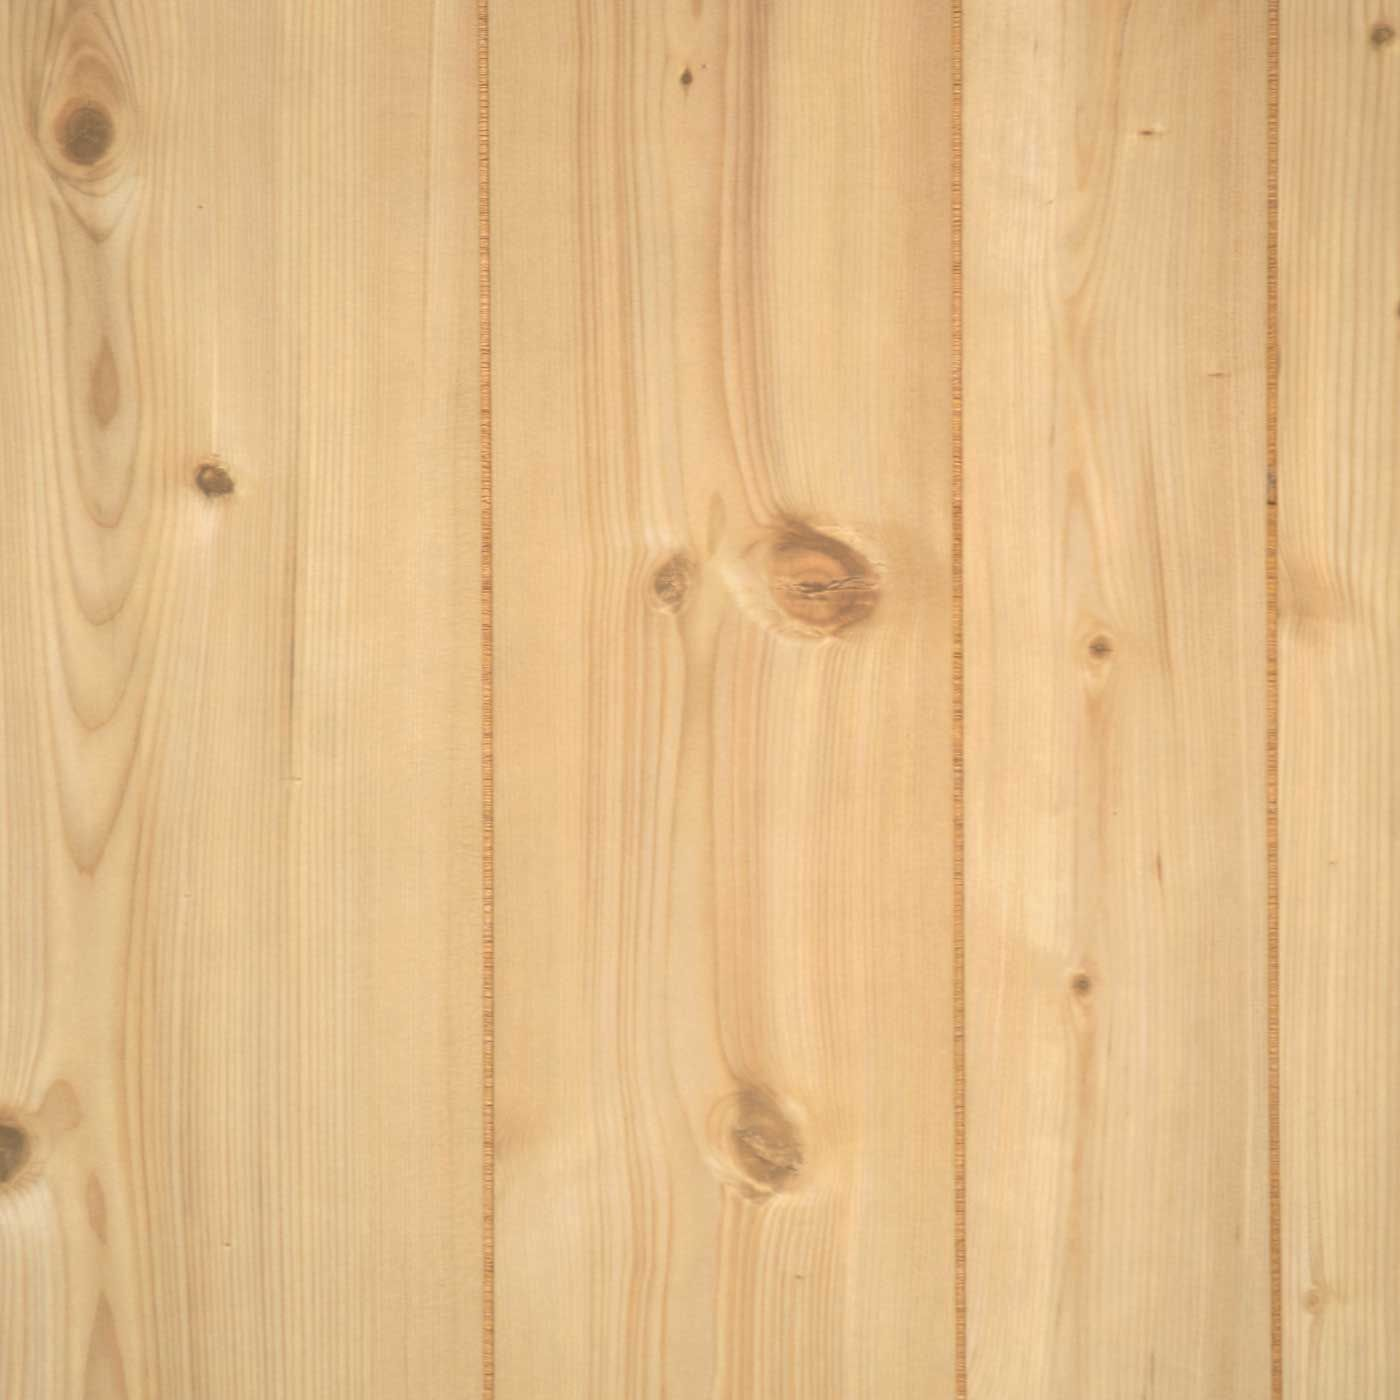 Rustique Pine Plywood Paneling 9-groove | Pine plywood, Plywood ...